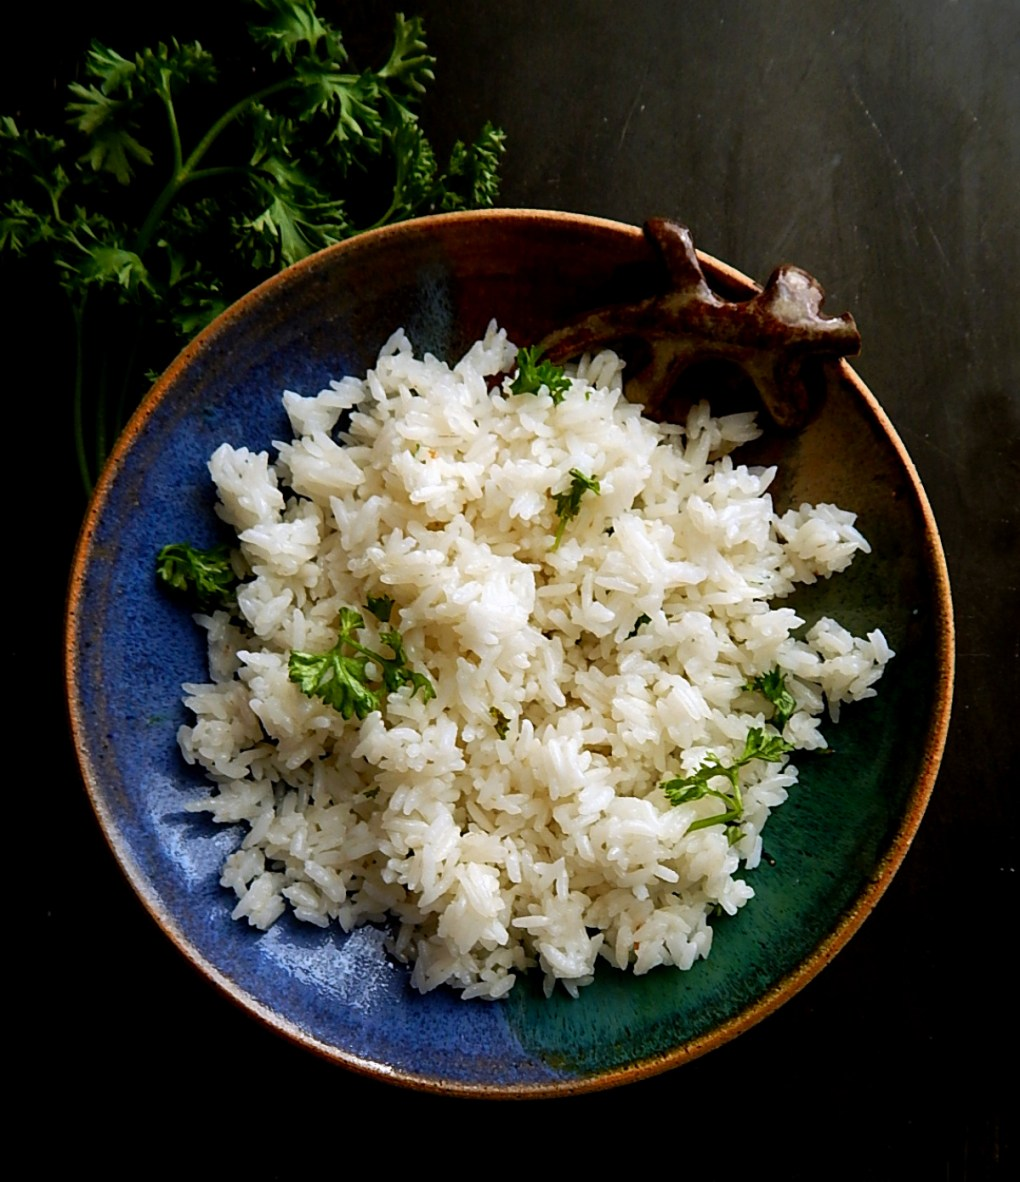 Cilantro Lime Rice Instant Pot or Stove Top Chipotle Copycat